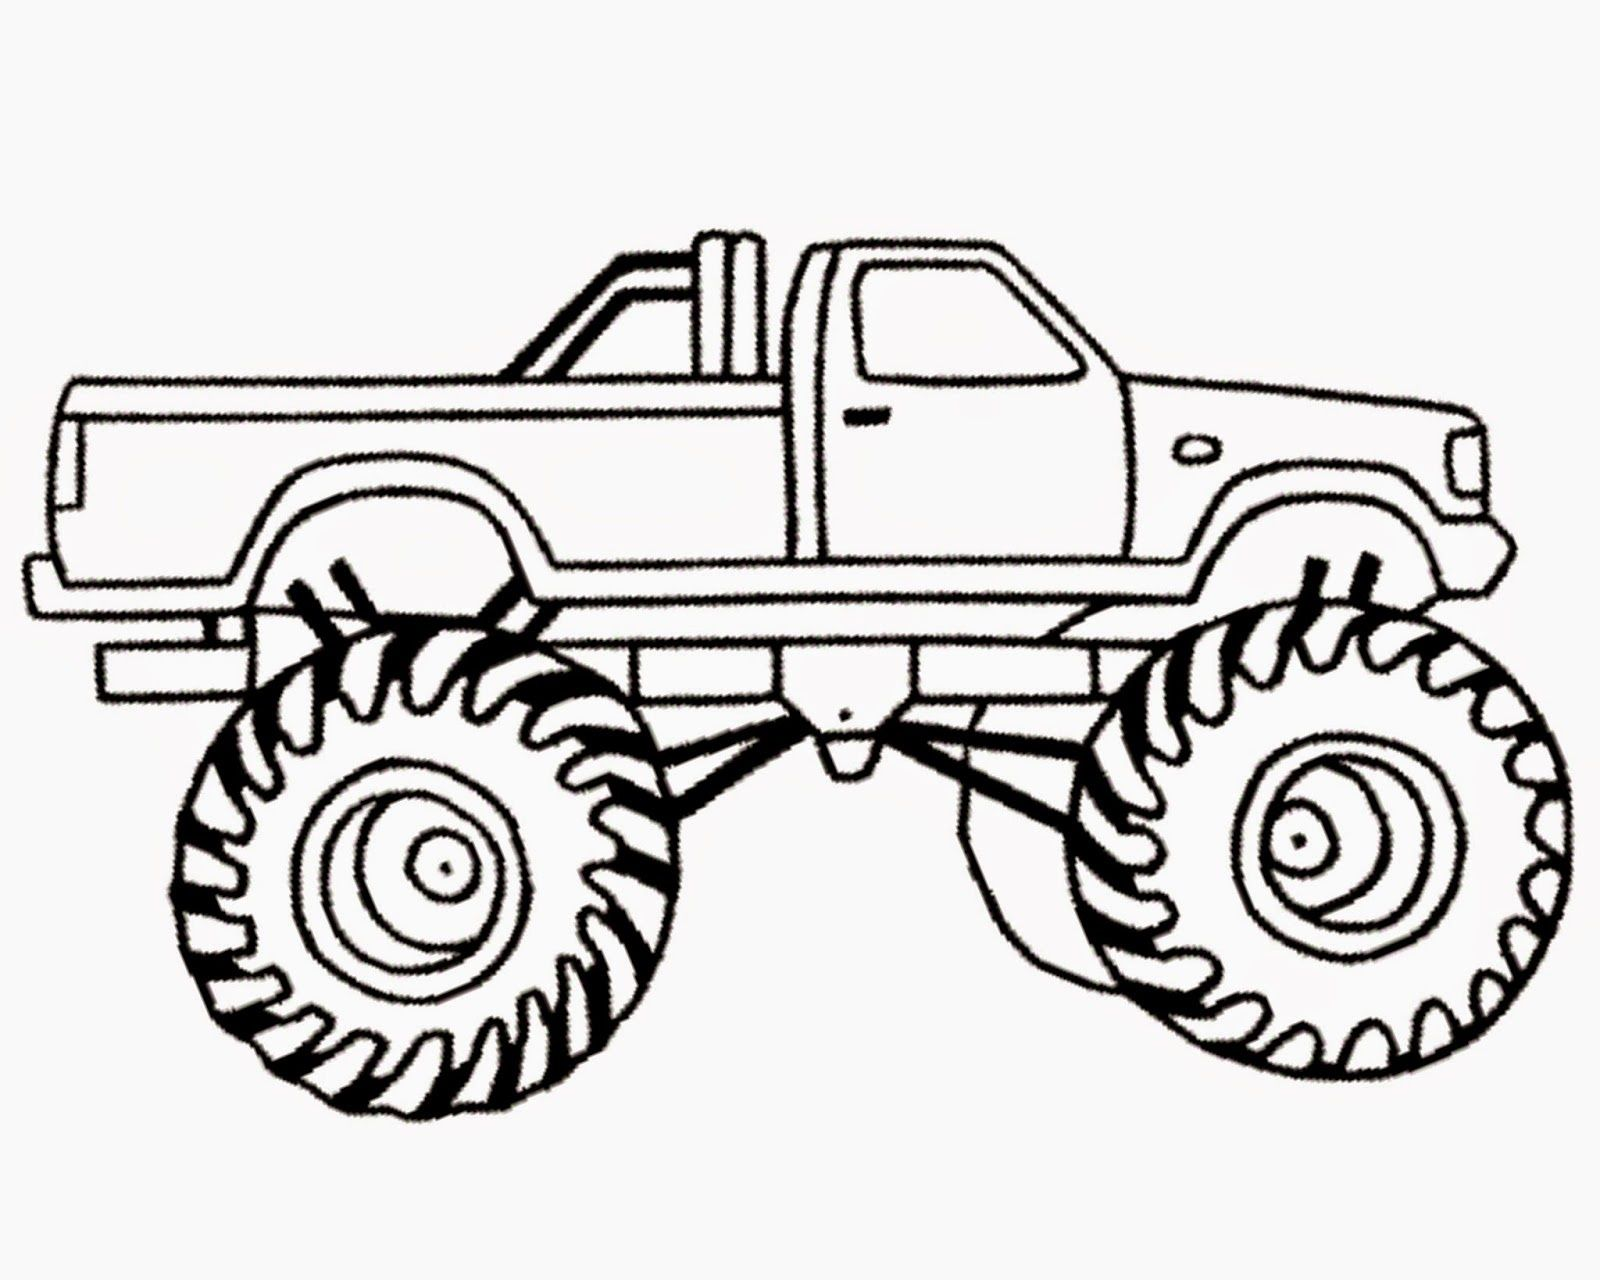 Index furthermore Arctic Cat Mud Pro Atv To Print Off At Yescoloring Coloring Pages furthermore Atv Coloring Pages in addition Coloring Page Line Art Of An Excited Man 4wheeling His Truck Through Mud 433276 moreover Vector Ein Kleiner Junge Sitzt Auf Quad Bike Vektor 2655199. on atv mud coloring page